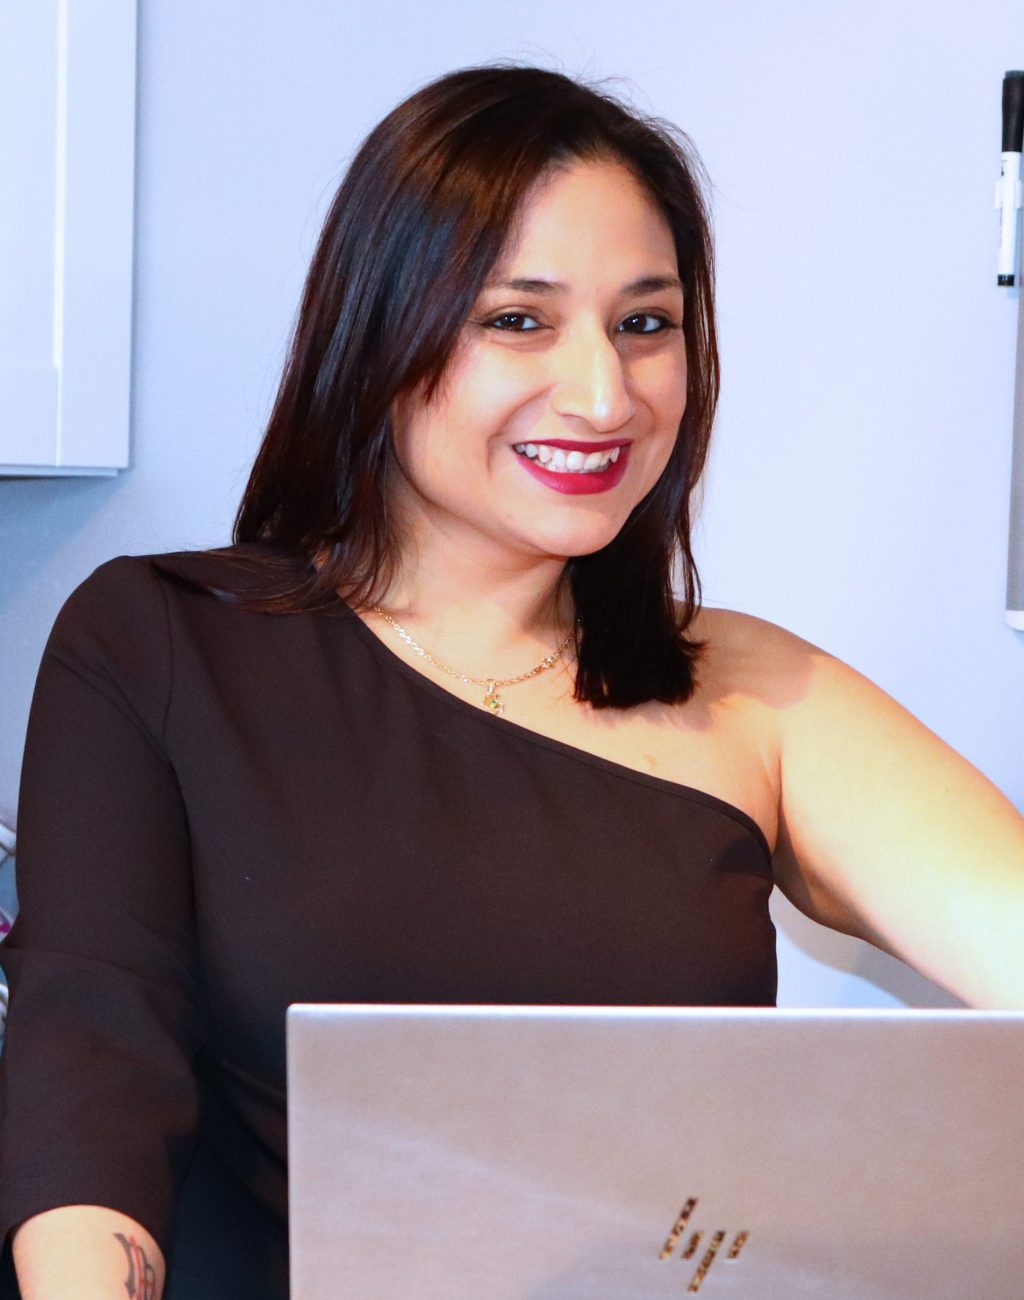 stephanie-smiling-at-computer